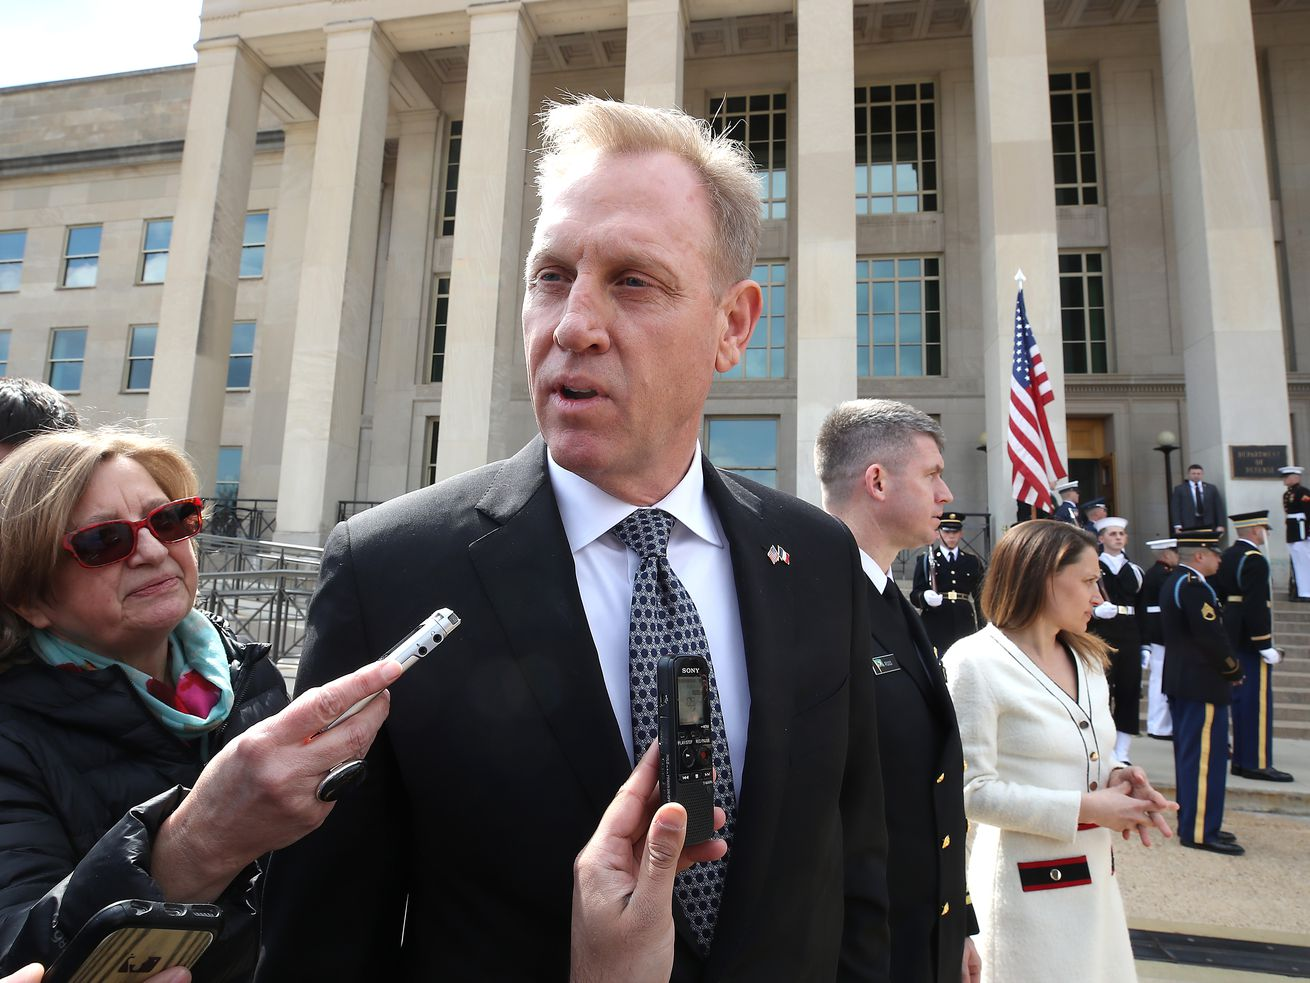 Acting Defense Secretary Patrick Shanahan speaks to the media before welcoming French Armed Forces Minister Florence Parly during an honor cordon at the Pentagon on March 18, 2019, in Arlington, Virginia.